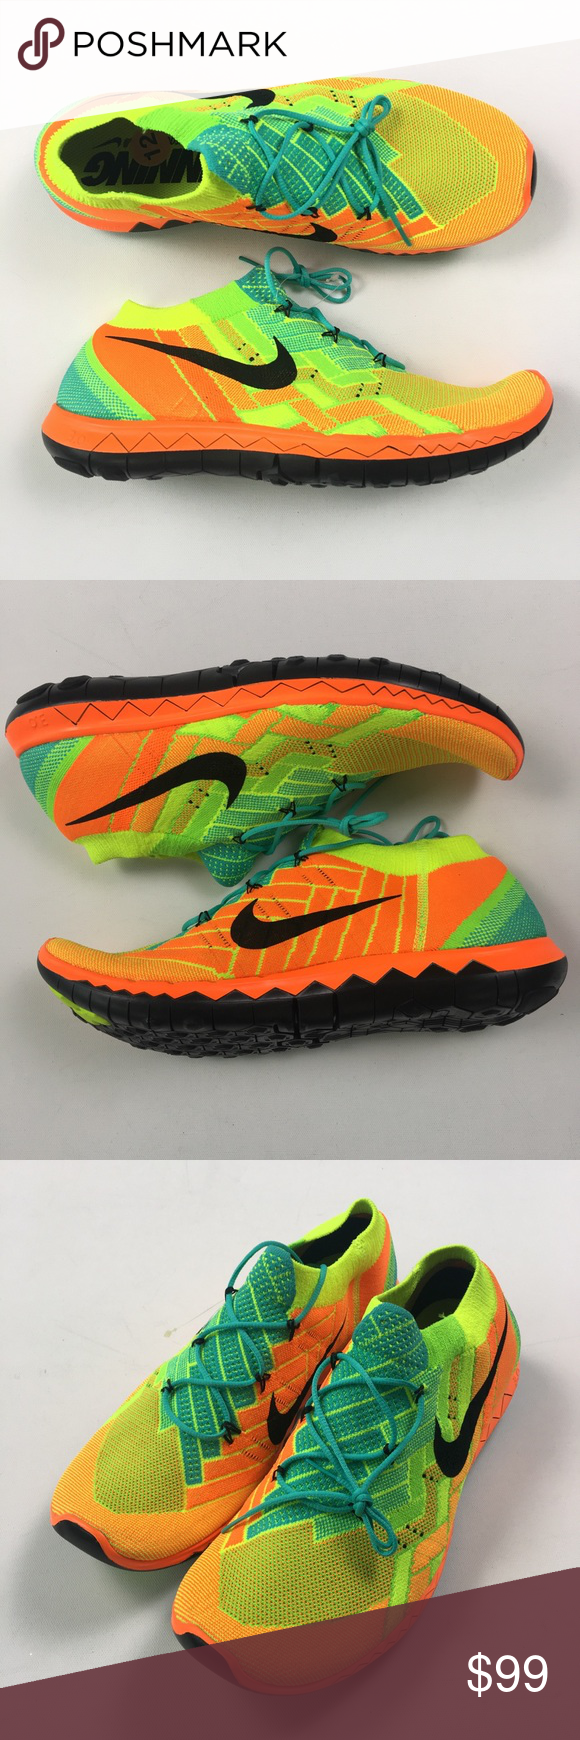 823843fc861b Nike Running Barefoot 3.0 Size 12 C46 Brand new no box. Nike Shoes Athletic  Shoes